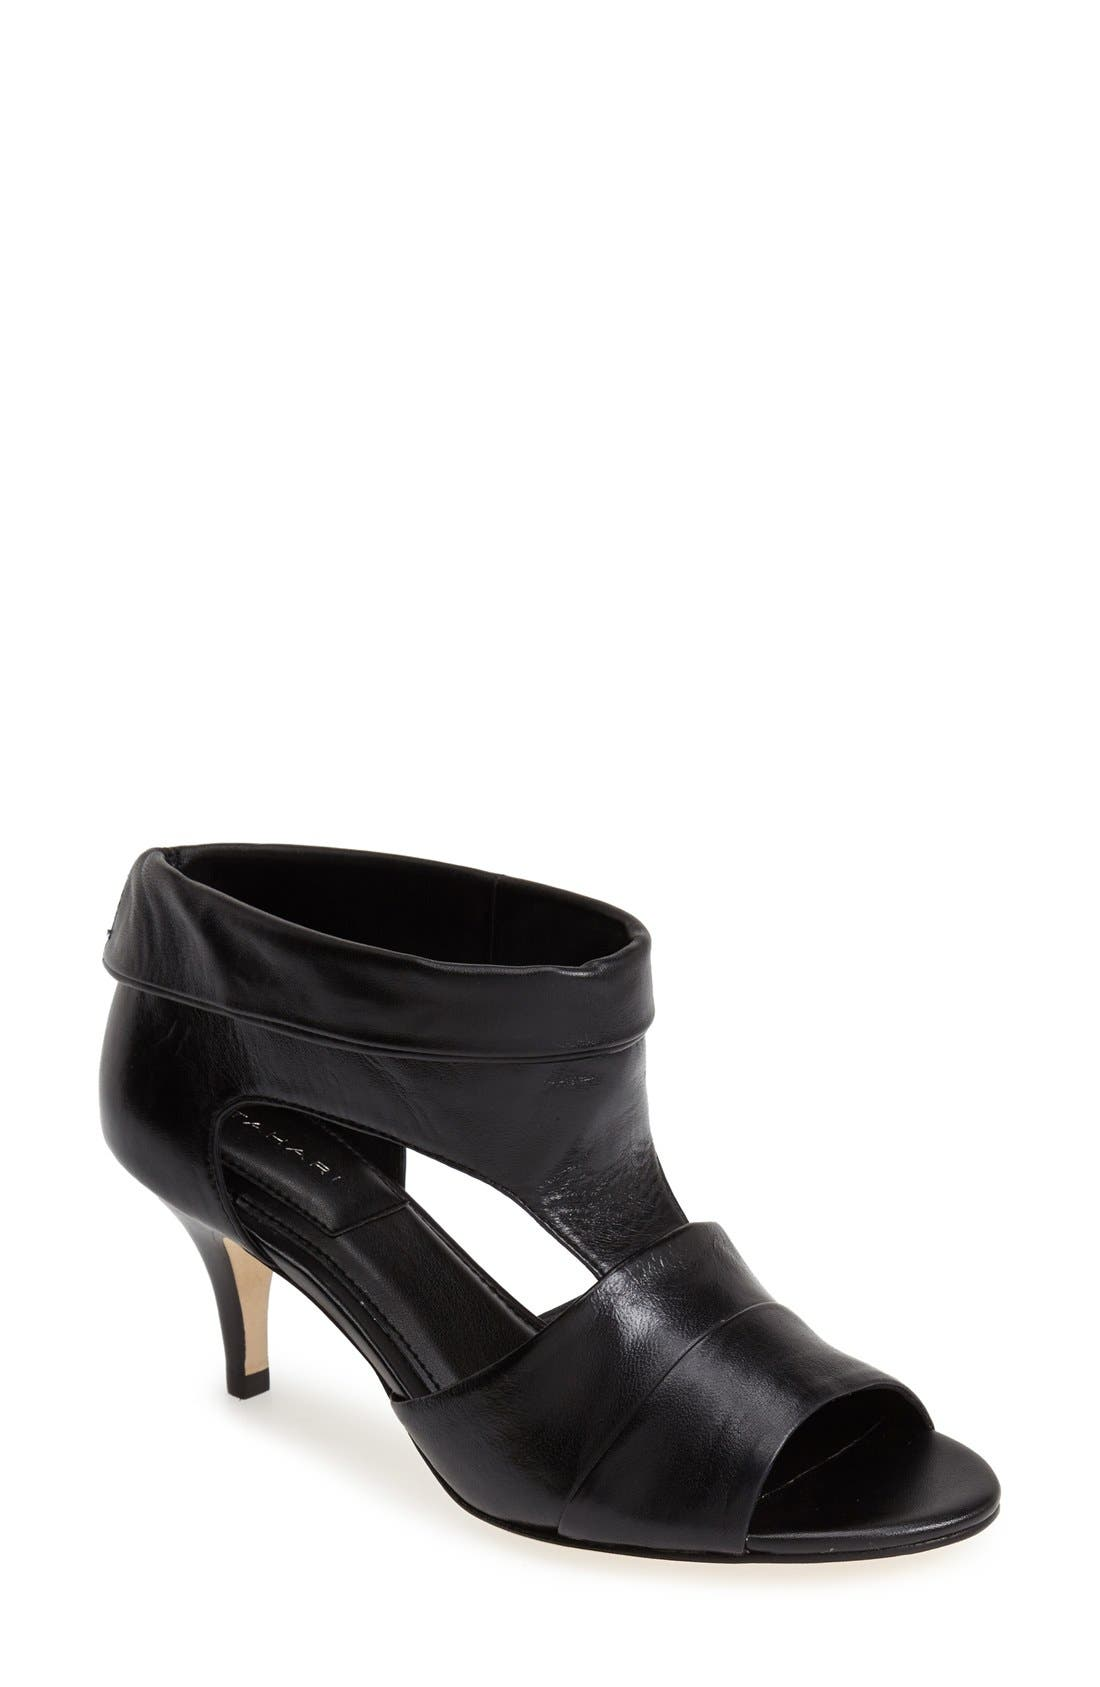 Alternate Image 1 Selected - T Tahari 'Rumer' Cuff Leather Bootie (Women)